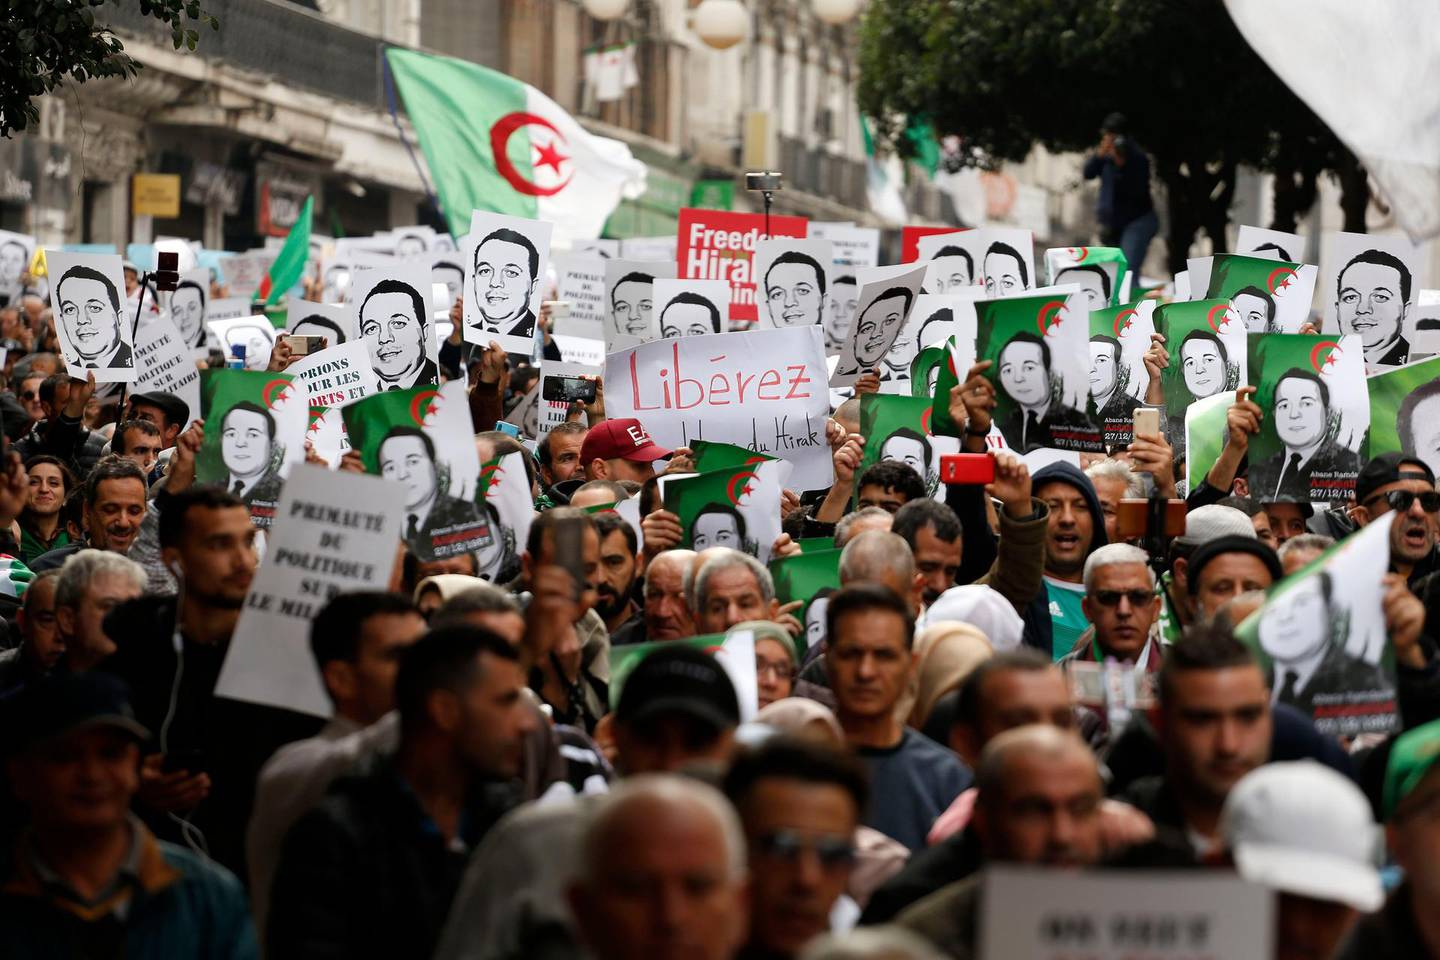 Protesters carry photos of political detainees as they take to the streets in the capital Algiers to reject the presidential elections and protest against the government, in Algeria, Friday, Dec. 27, 2019. (AP Photo/Toufik Doudou)